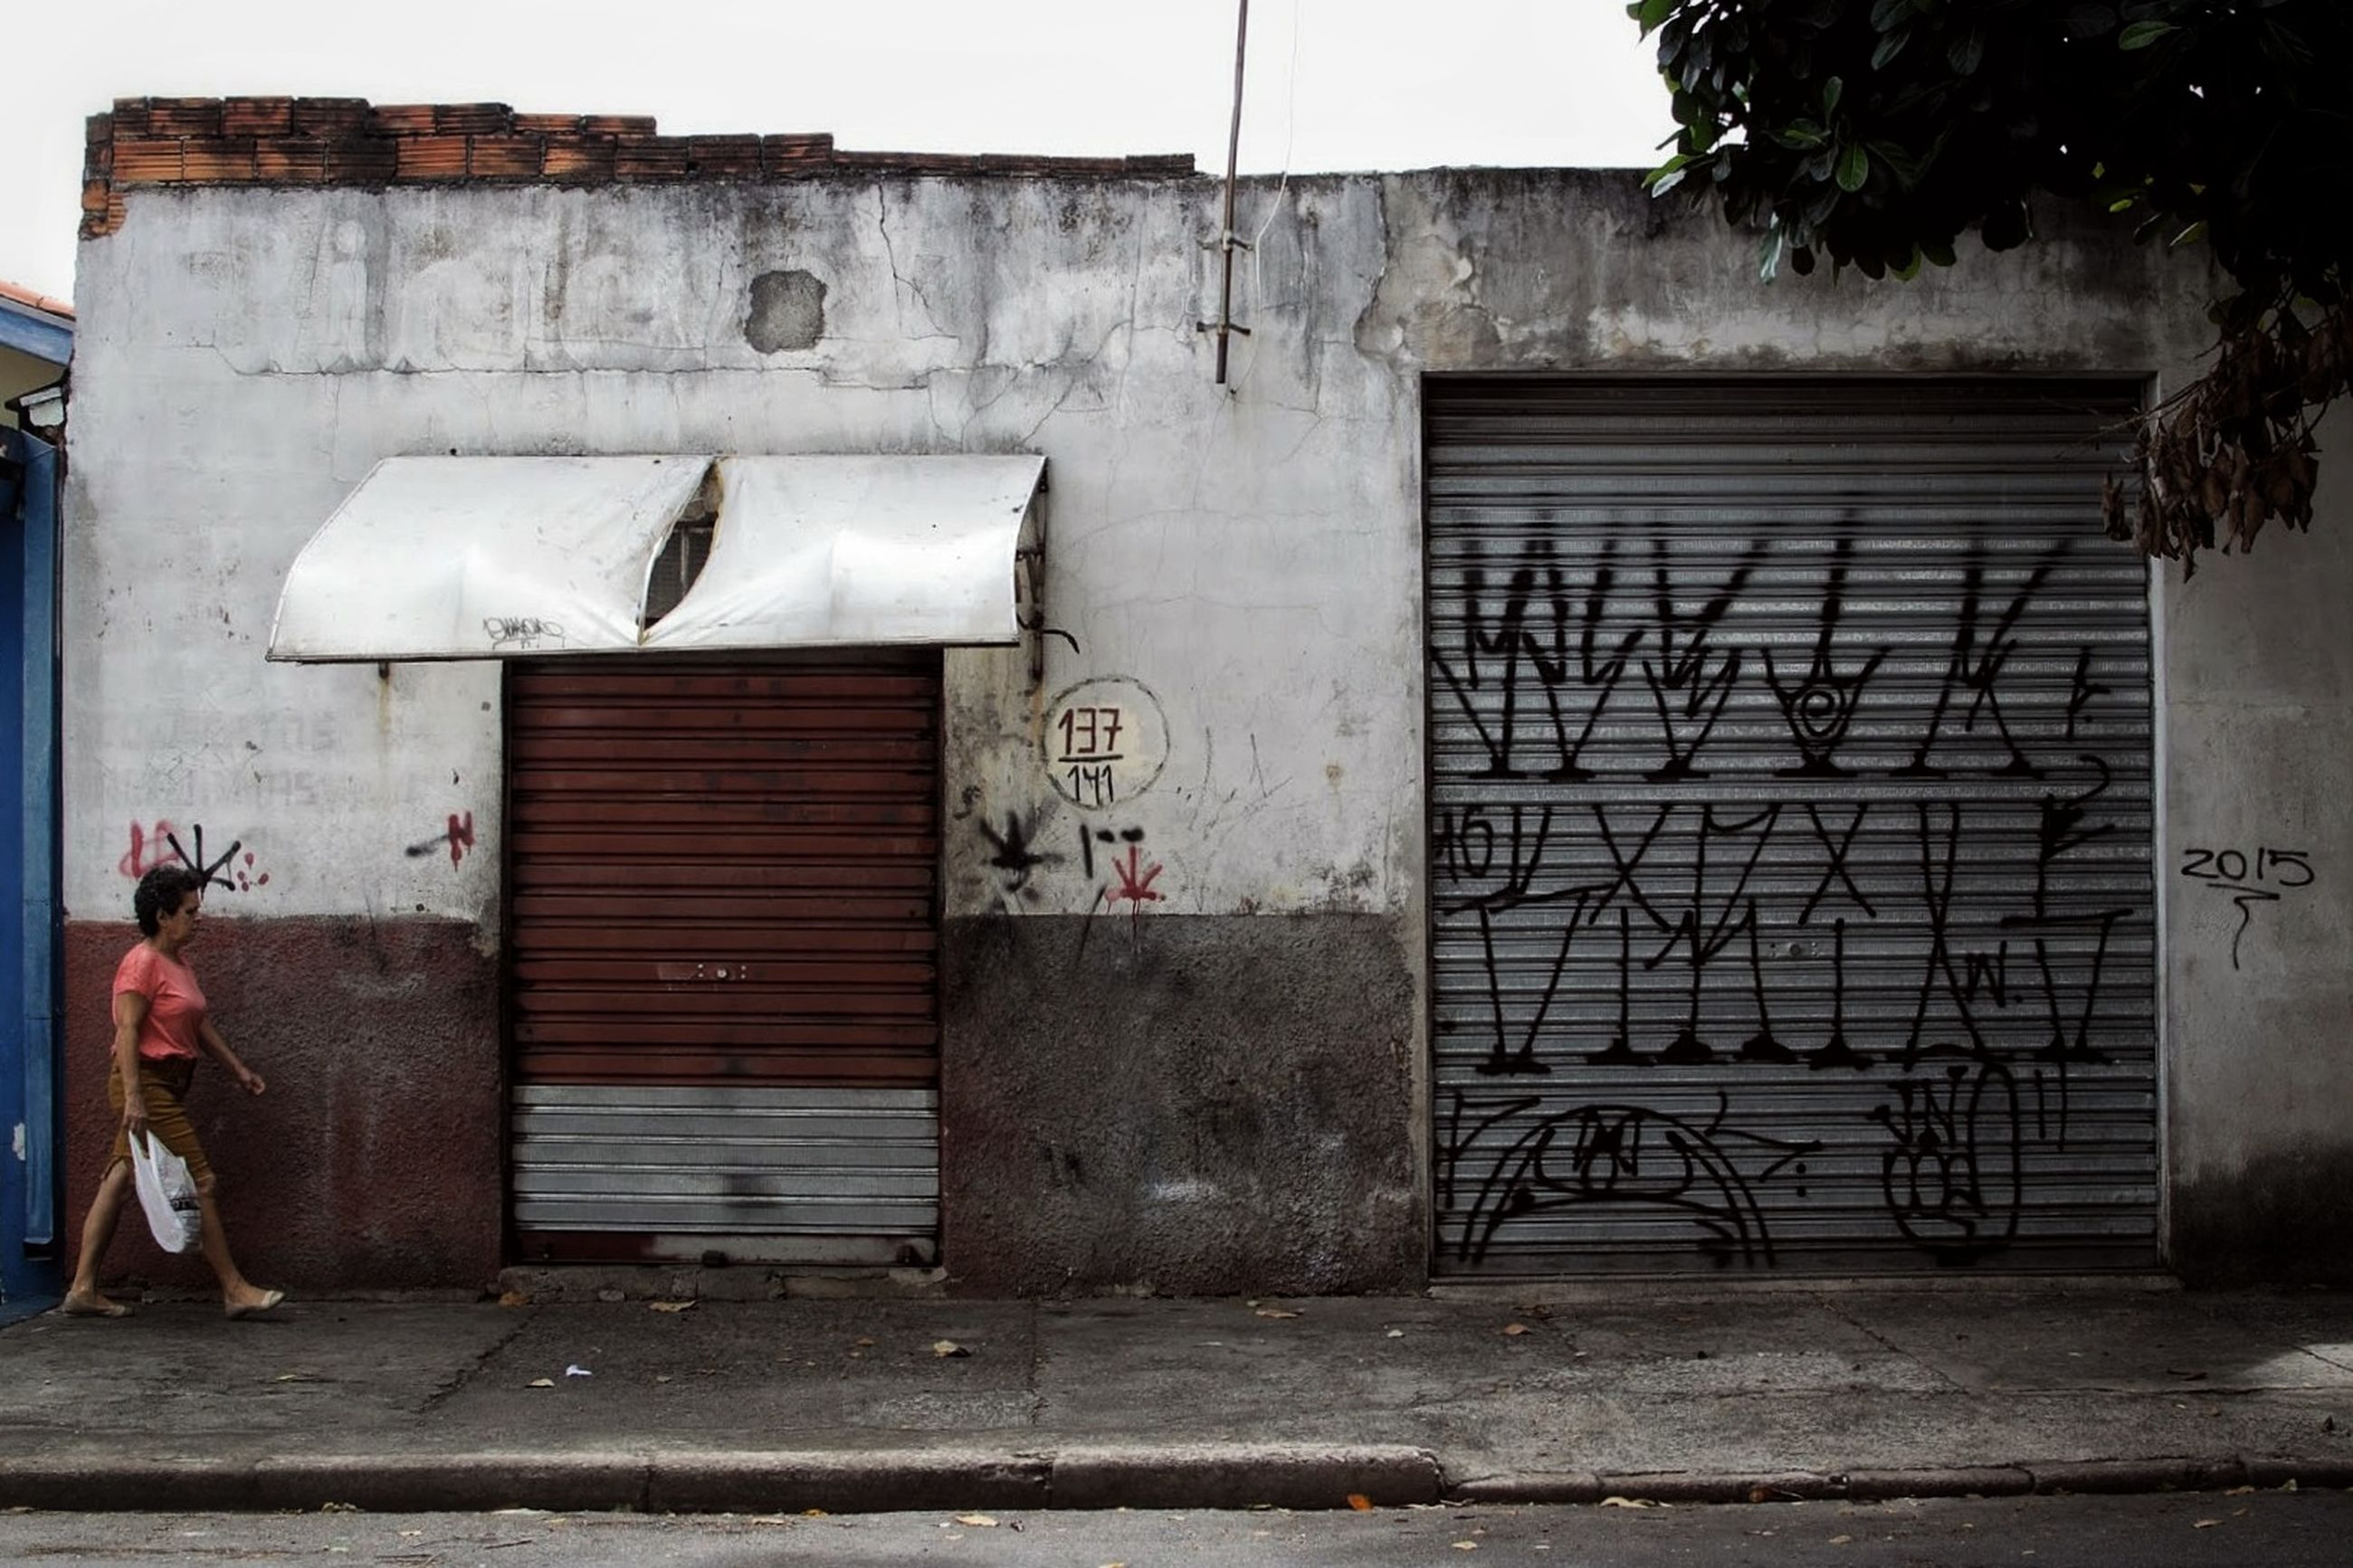 architecture, building exterior, built structure, day, closed, building, no people, graffiti, entrance, door, outdoors, wall - building feature, wall, city, old, corrugated iron, abandoned, gate, window, house, iron, garage